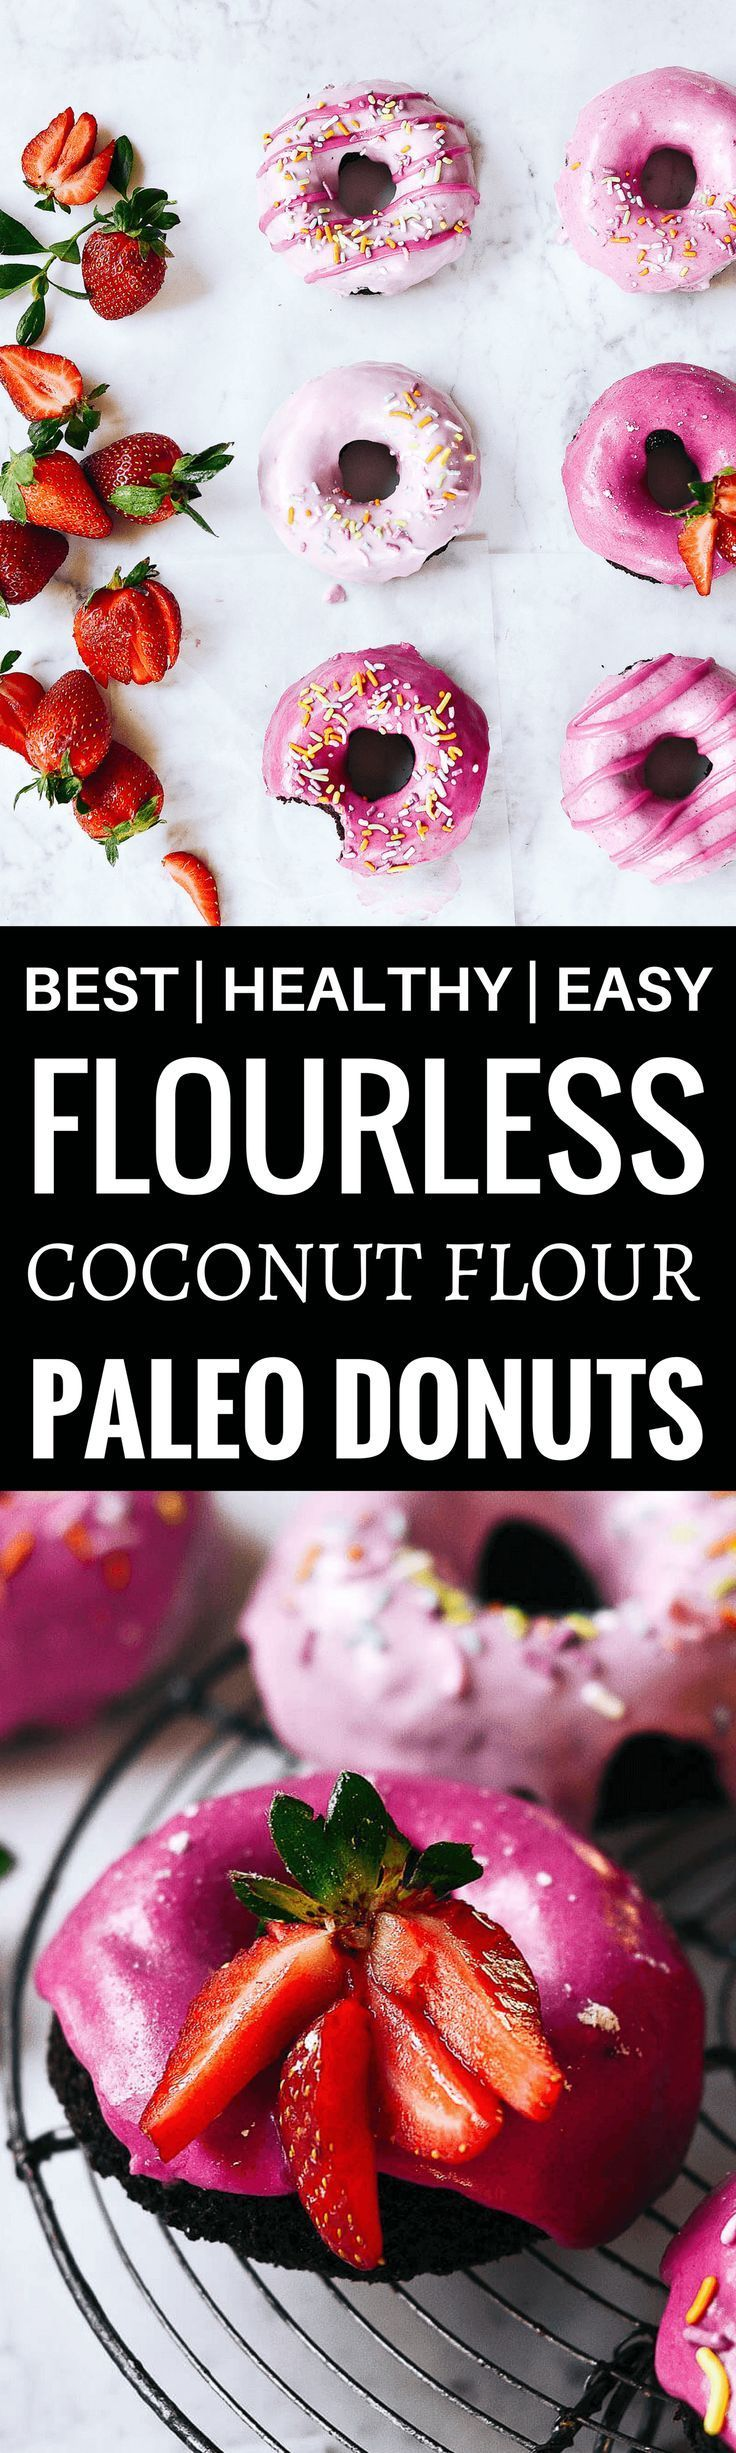 Paleo coconut flour brownie doughnuts. These cake like doughnuts are topped with a beautiful pink frosting made from beets! Easy to make recipe. Can be made ahead of time and frozen! Paleo donut recipe. easy gluten free